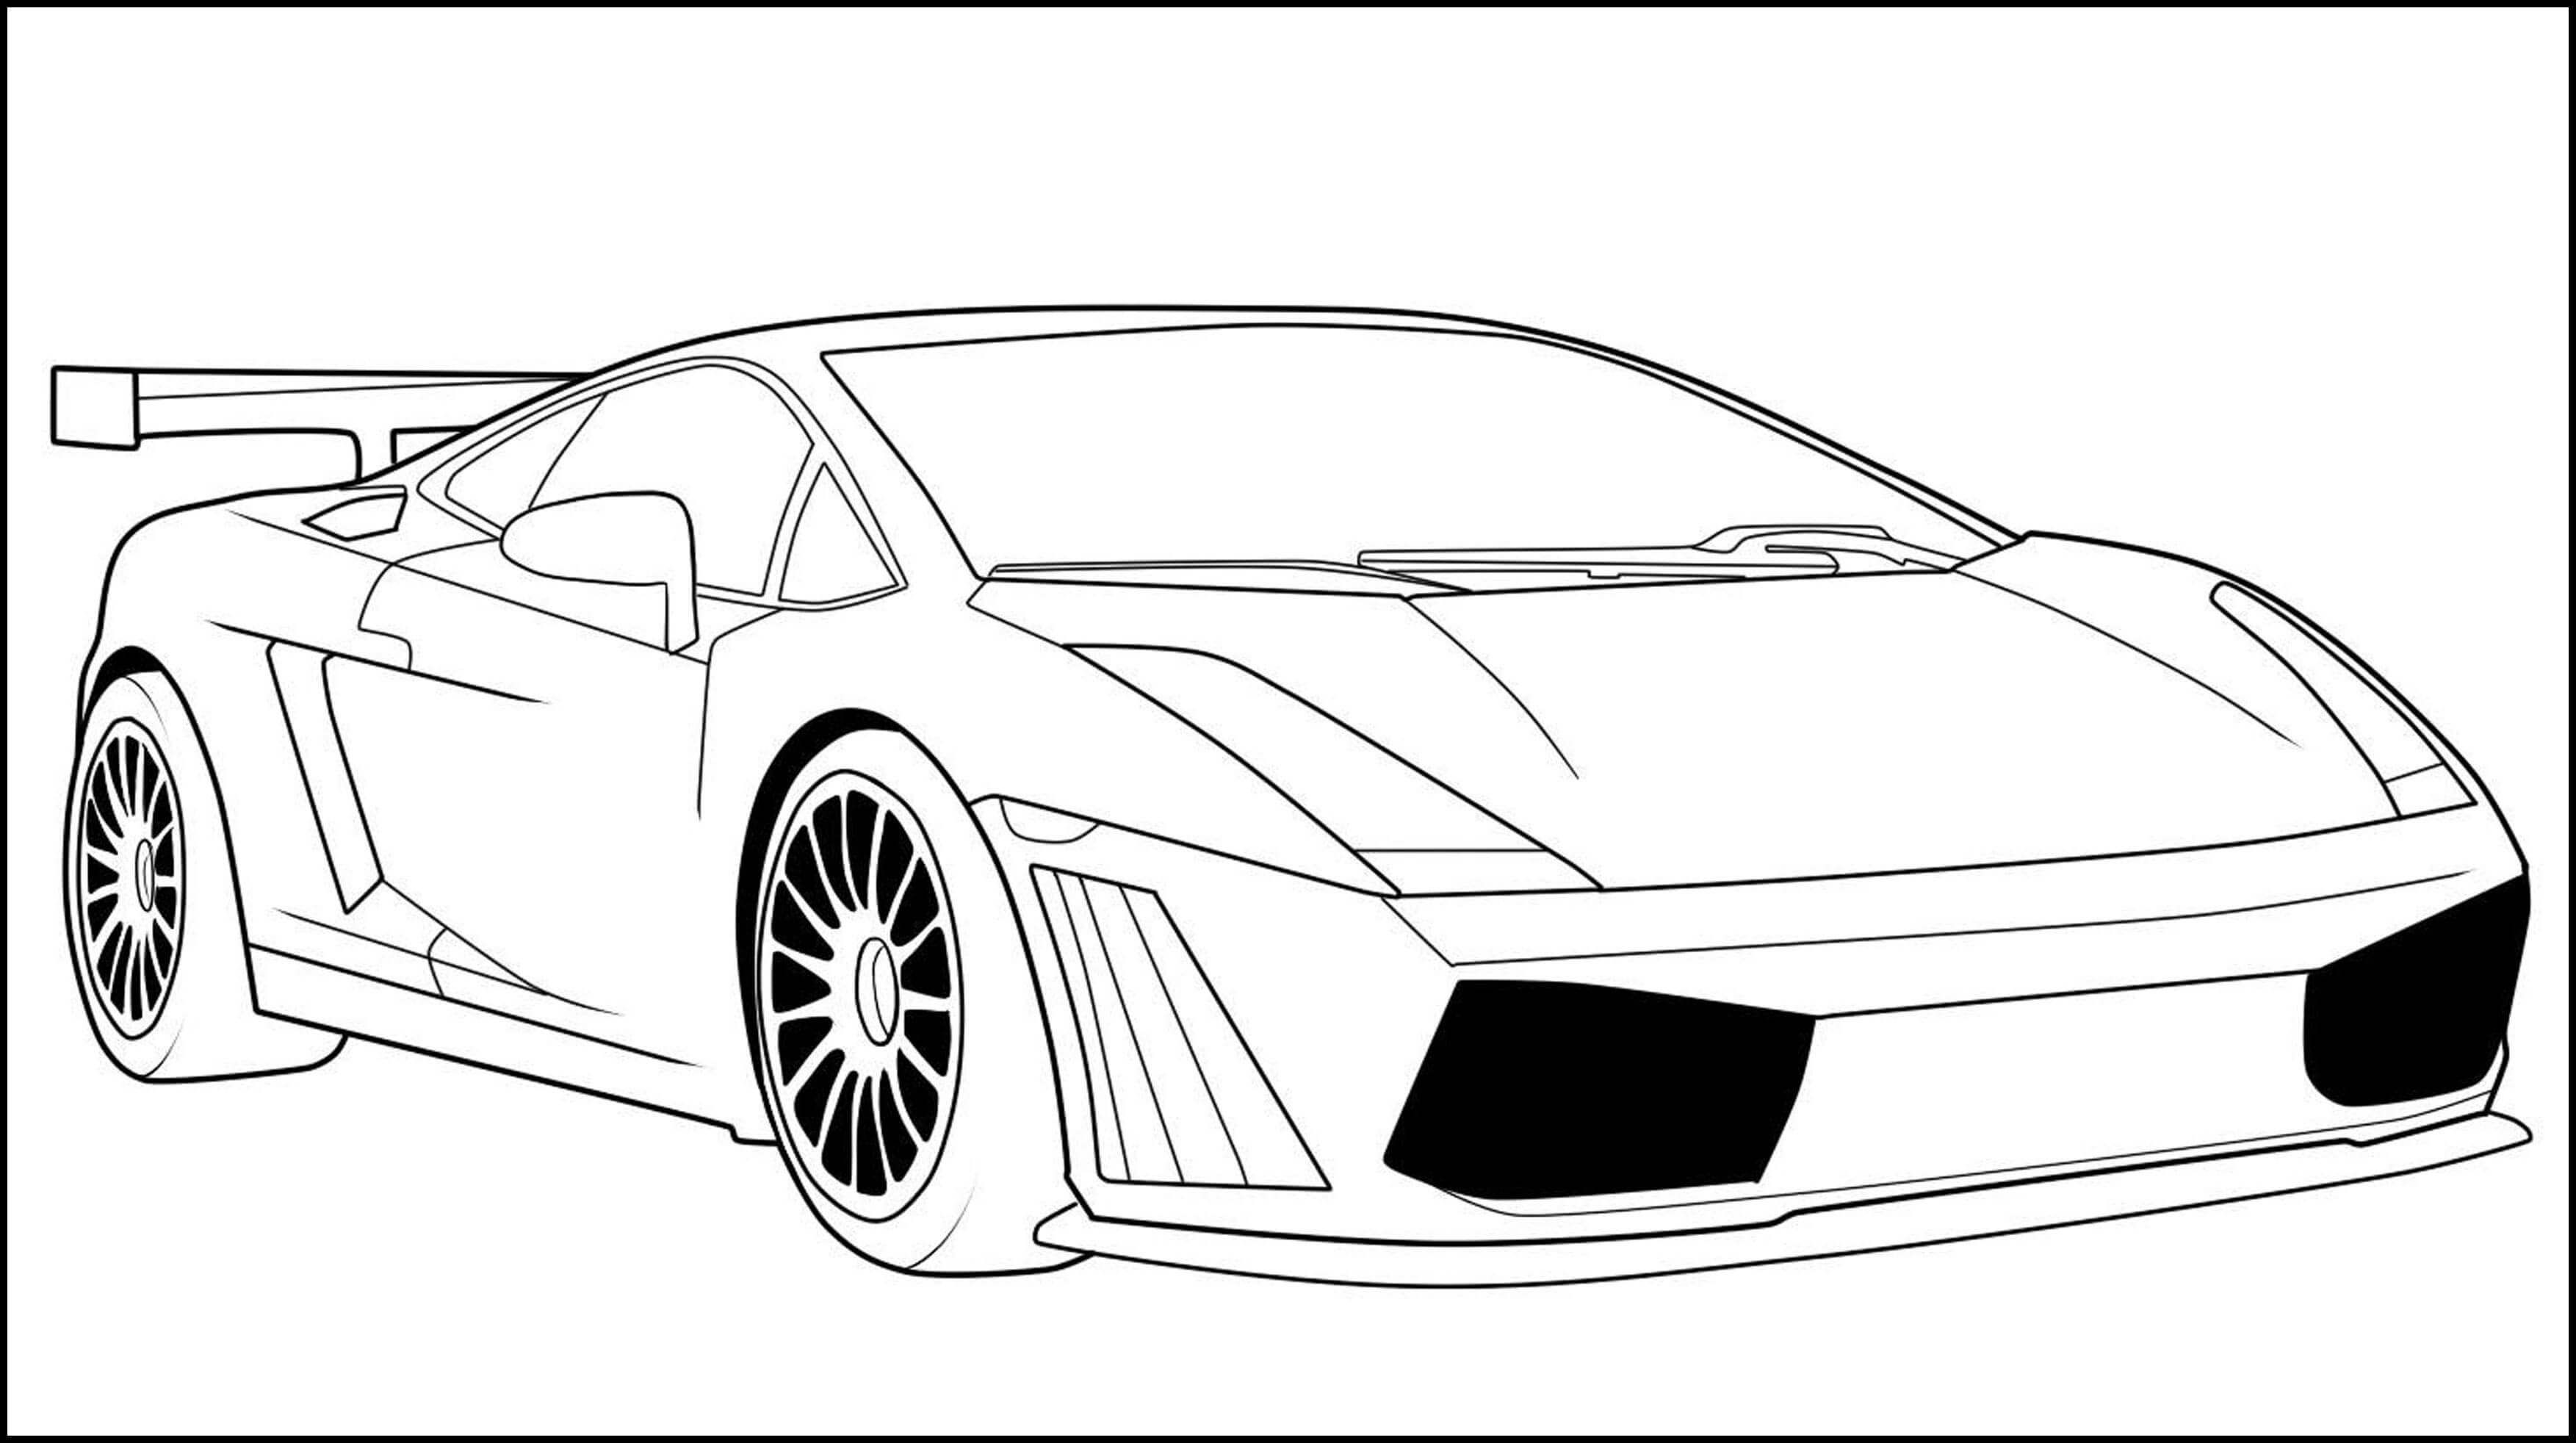 realistic lamborghini coloring pages lamborghini aventador coloring page in 2020 lamborghini pages realistic lamborghini coloring